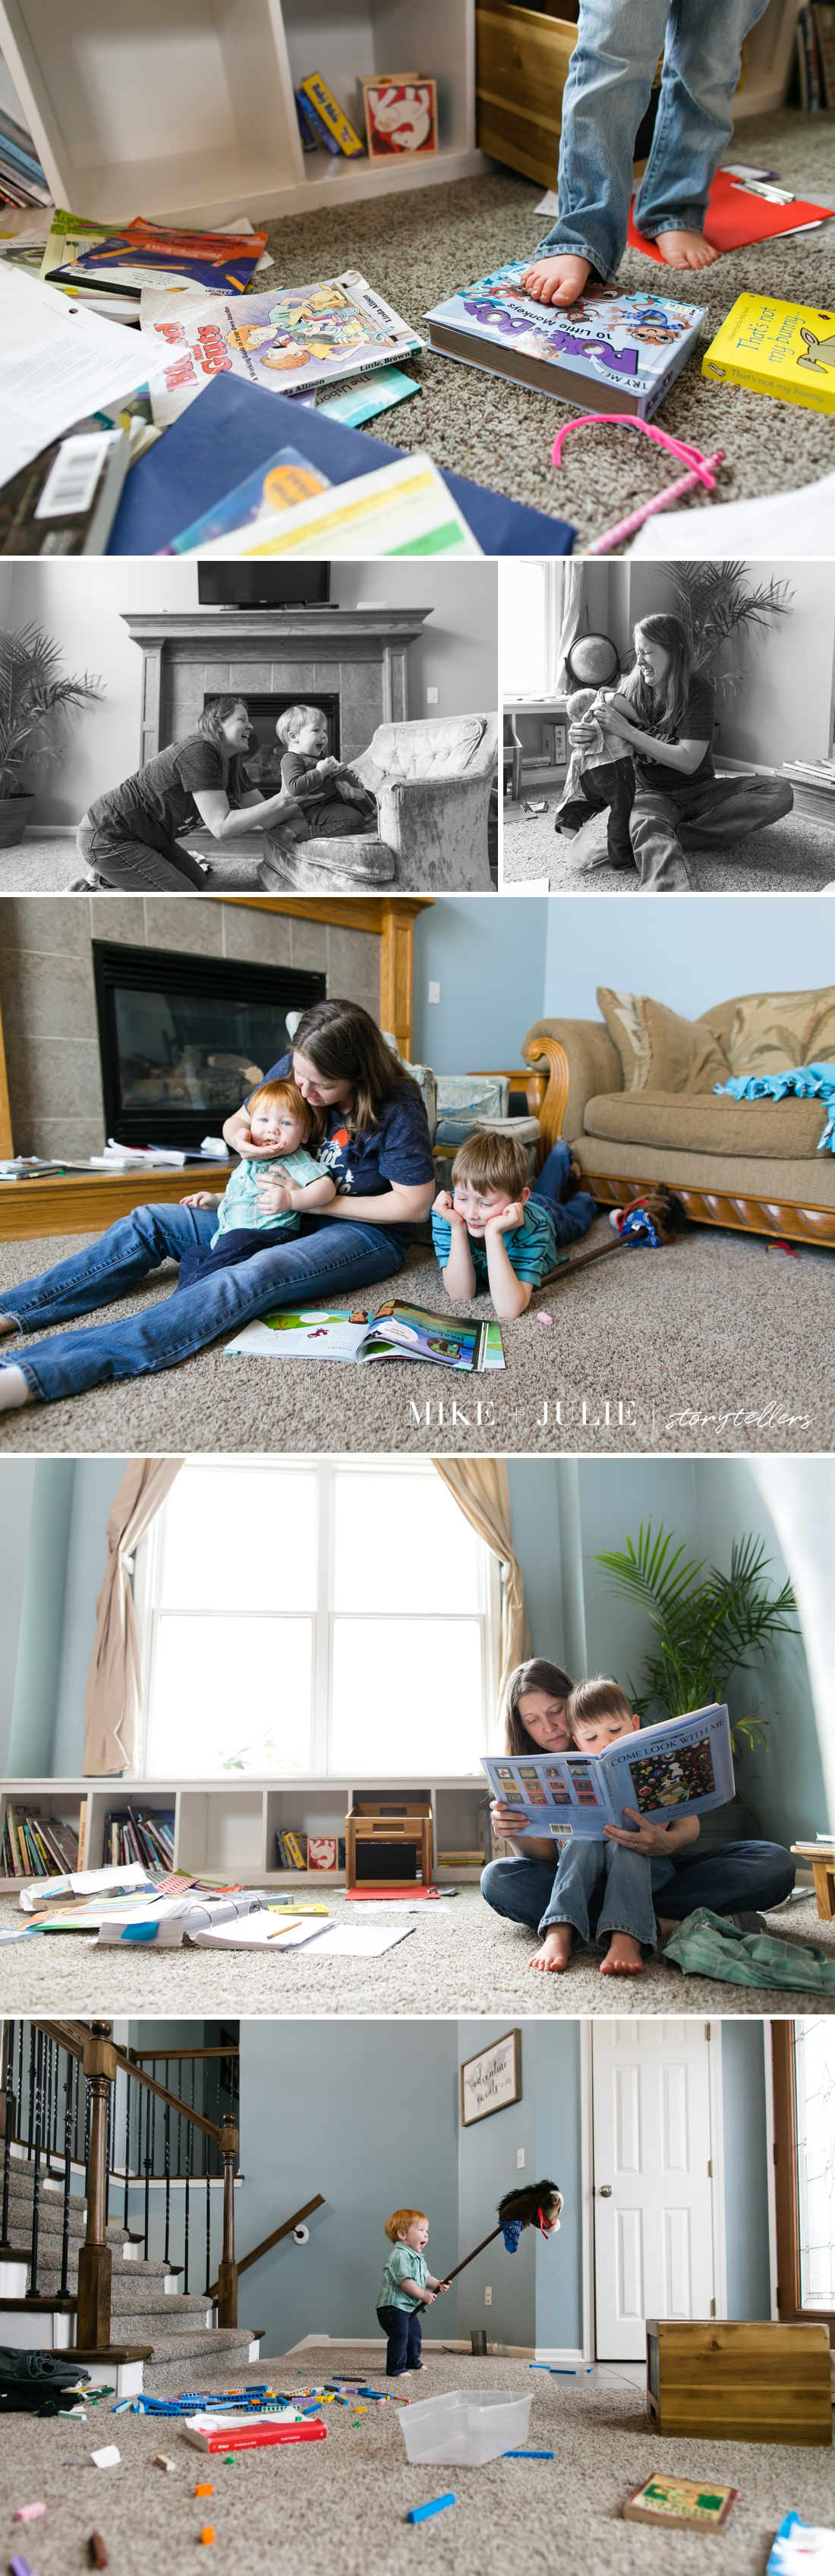 Kansas City real life moments day in the life documentary family pictures session photo